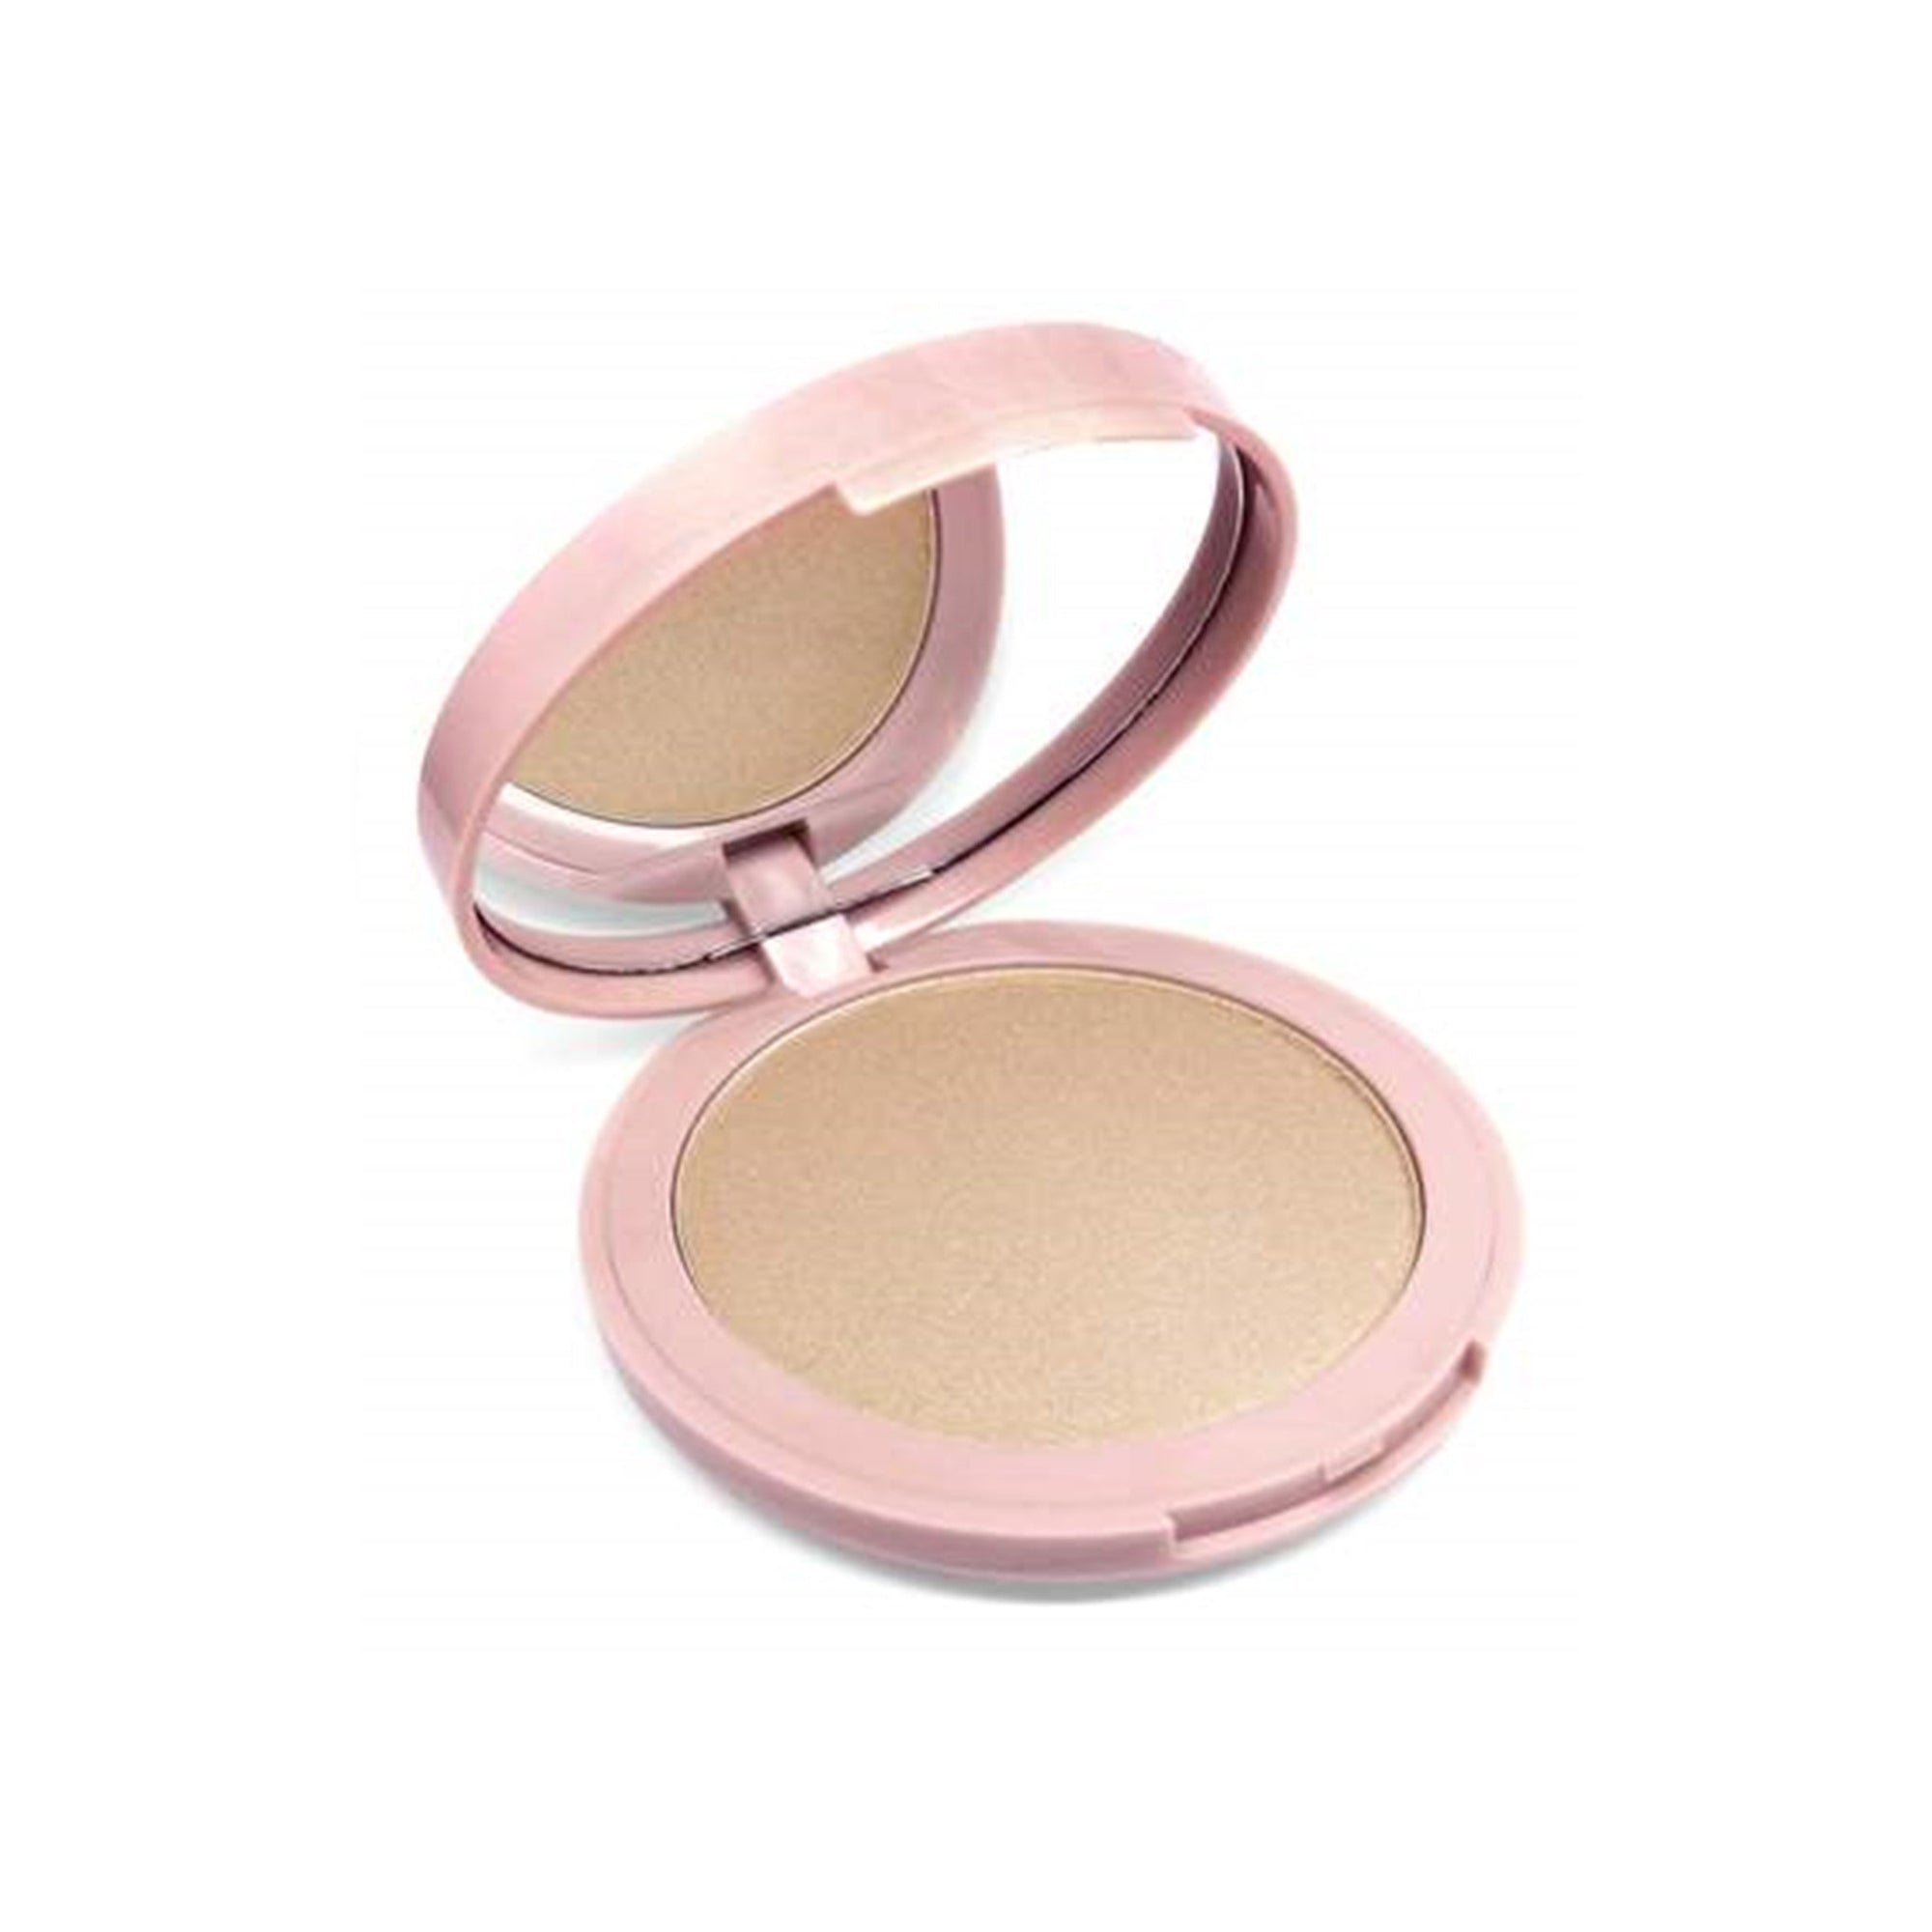 W7 Glowcommotion Highlighter - Extreme Ice